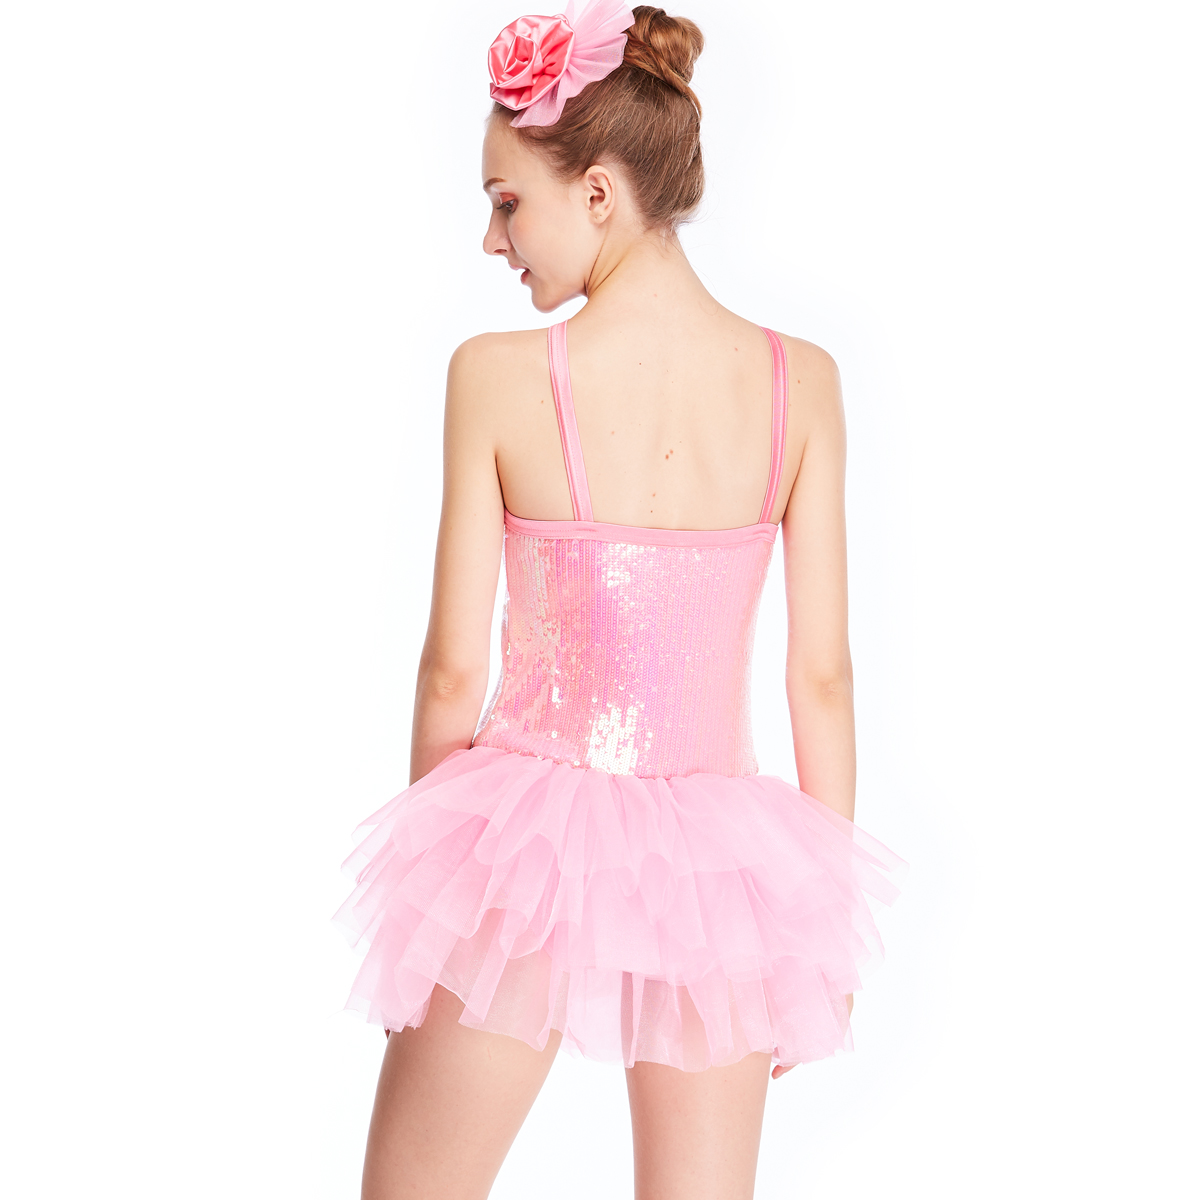 comfortable ballet outfits tutu factory price dancer-2